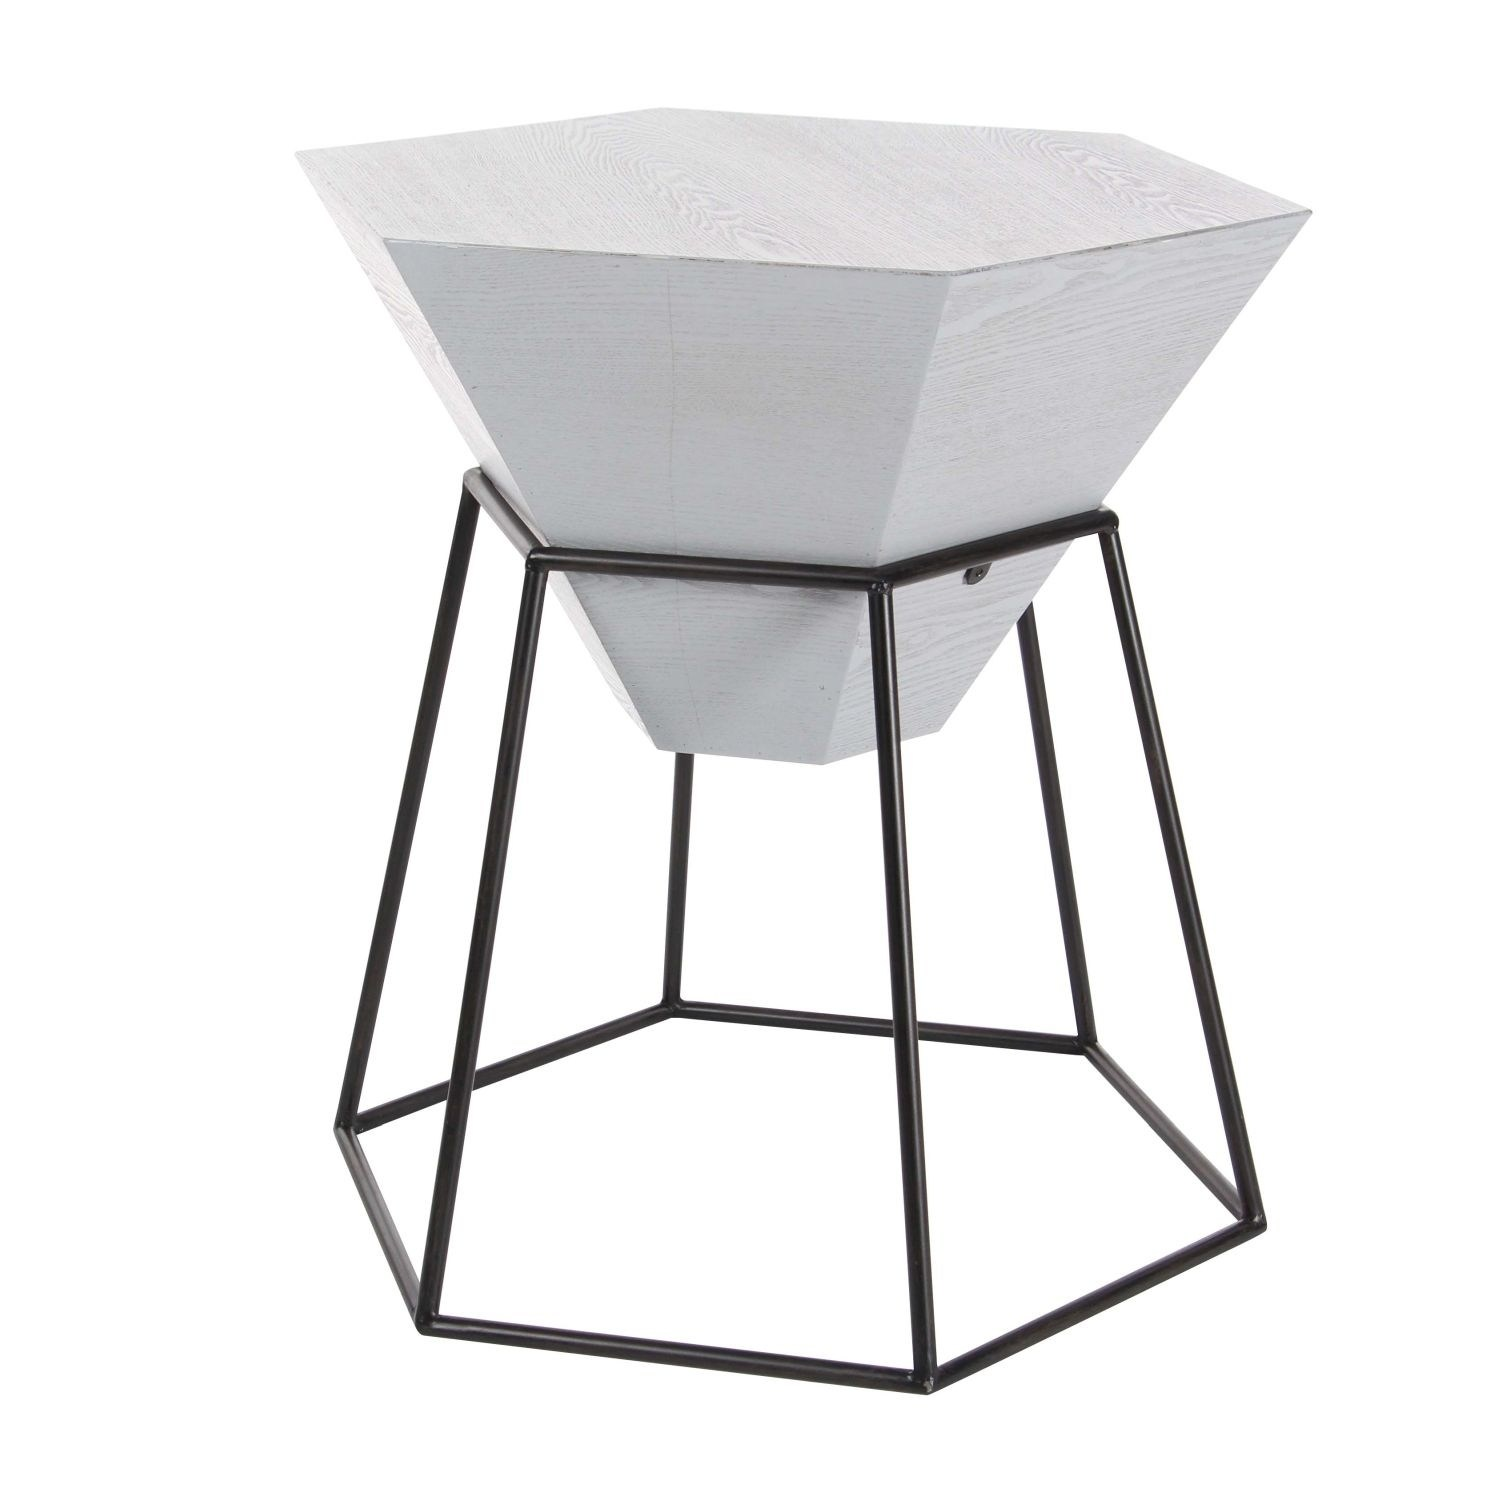 studio wood metal hex accent table inches wide high end tables free shipping today garden chairs set lamps glass coffee black farmhouse tablecloth for inch round brown patio